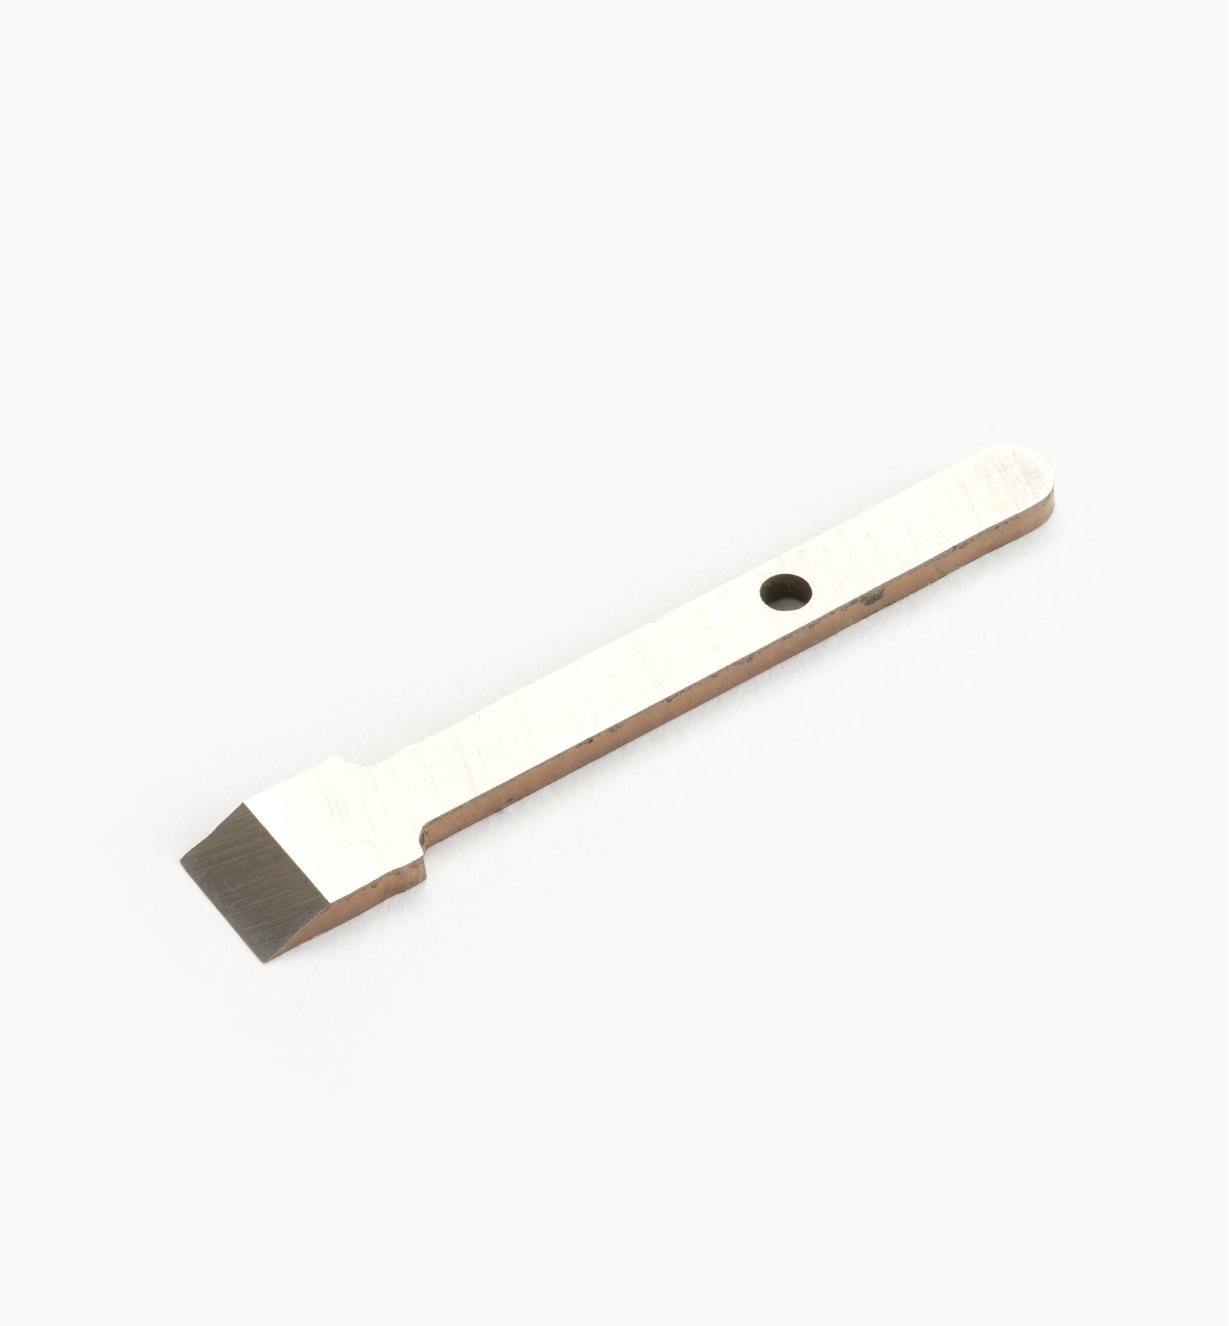 05P8002 - Veritas Miniature Shoulder Plane, Replacement Blade